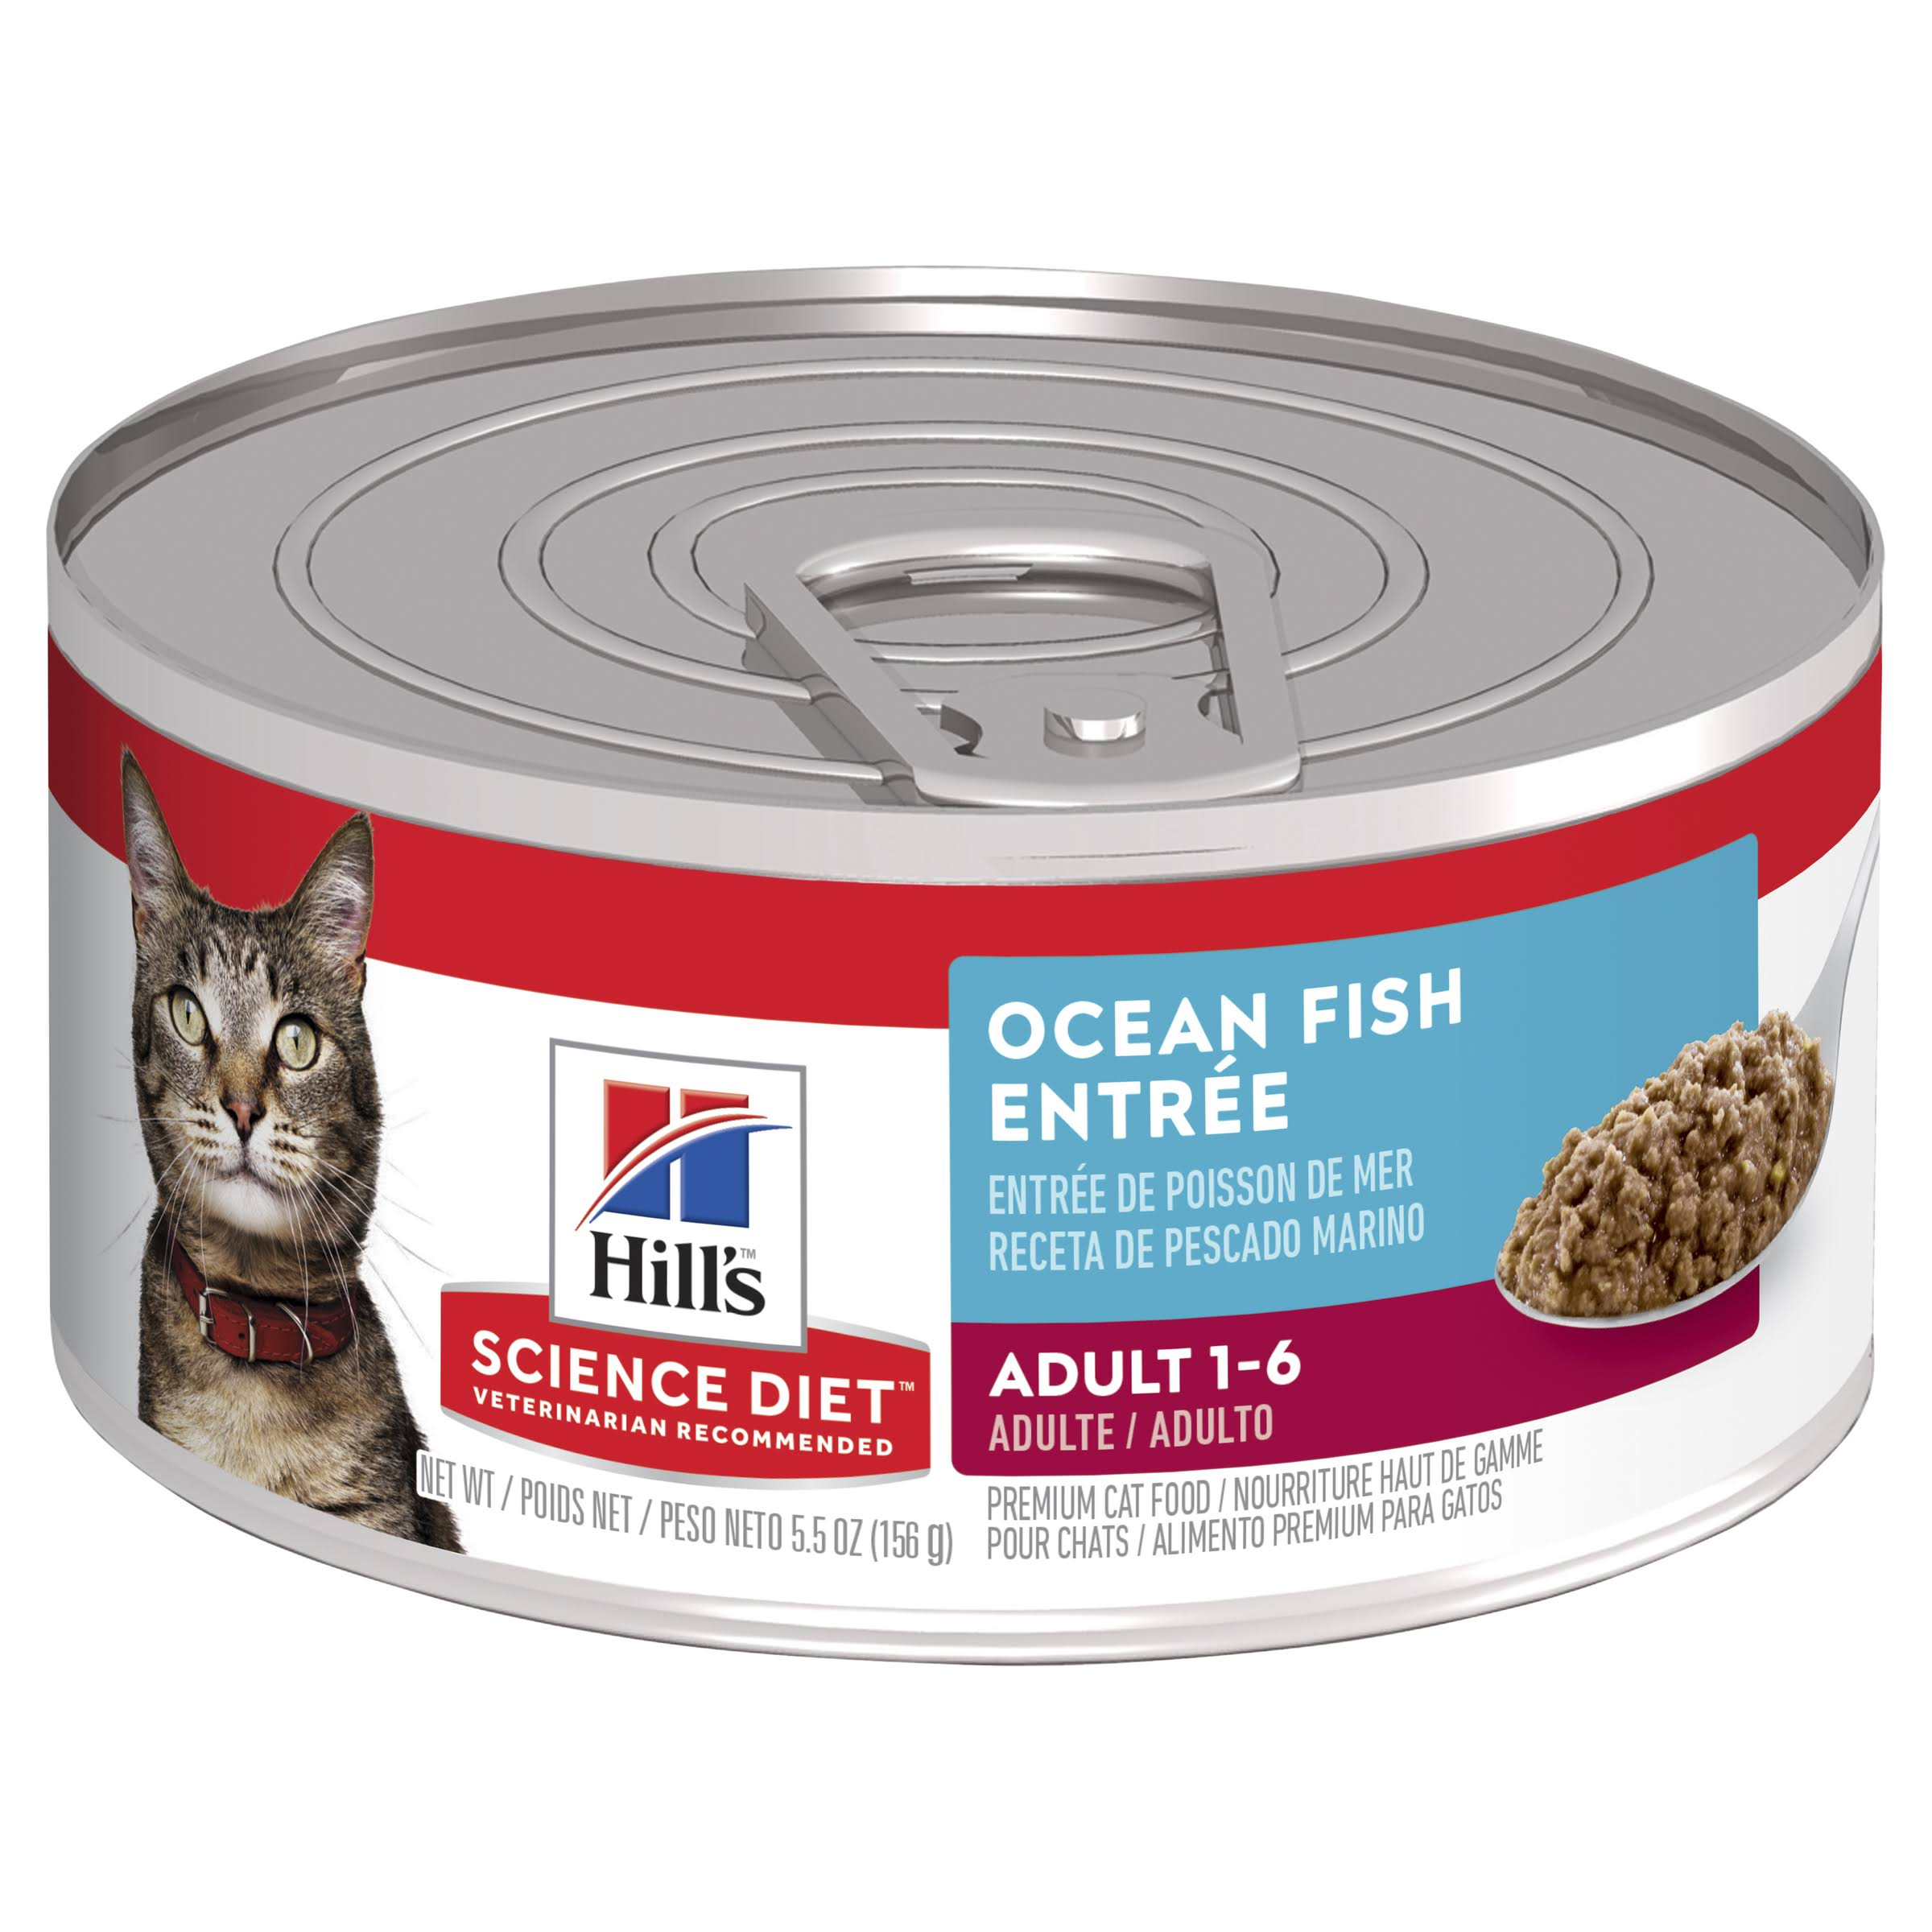 Hill's Science Diet Cat Food - Adult, Indoor Cat, Ocean Fish Entree, Minced